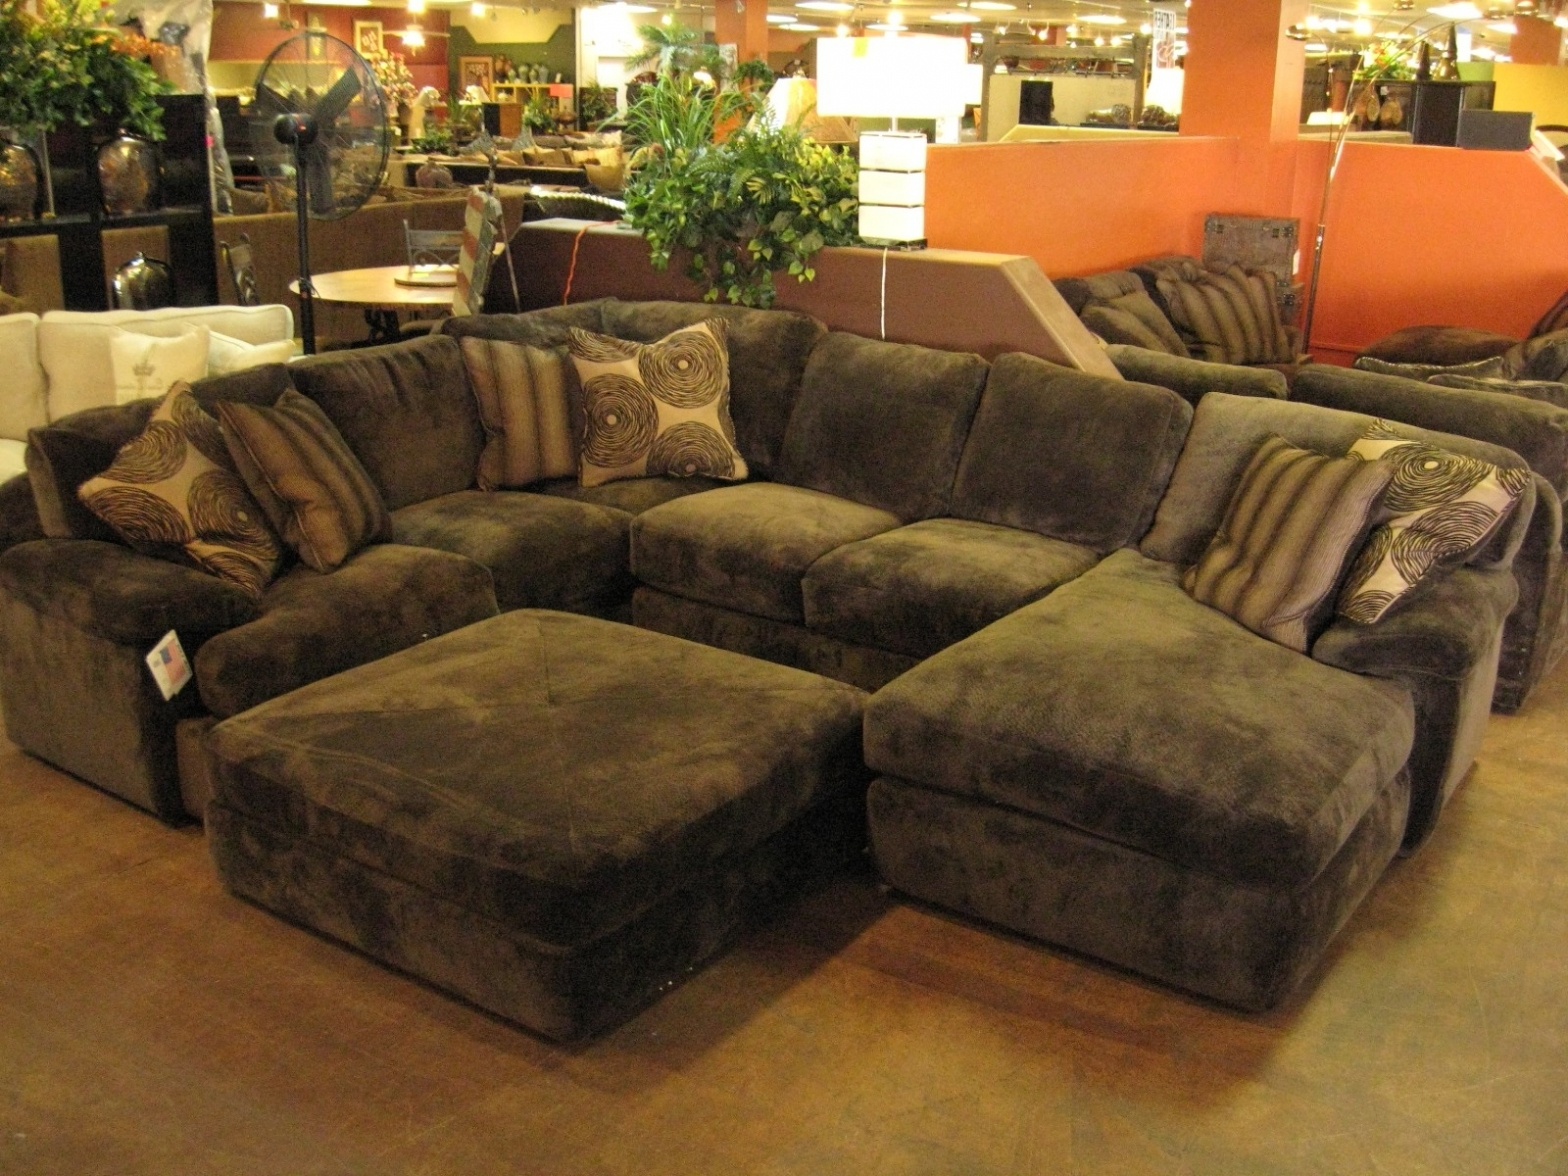 Furniture: Awesome Amazon Sectional Sofas 77 On The Brick Intended For Well Liked Sectional Sofas At Amazon (View 4 of 20)